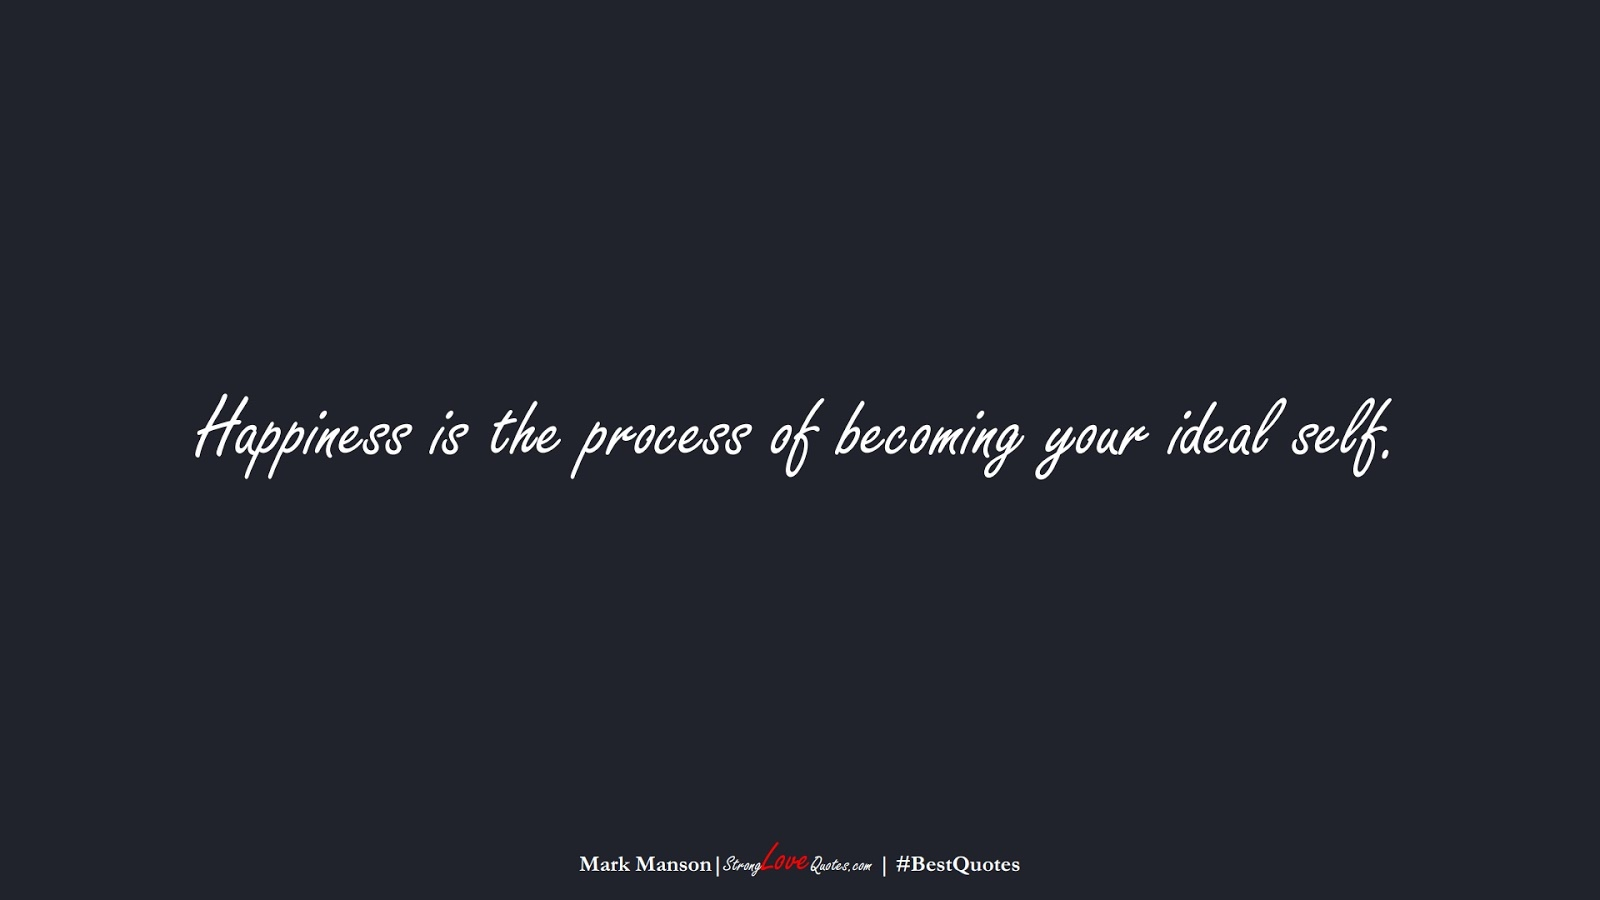 Happiness is the process of becoming your ideal self. (Mark Manson);  #BestQuotes